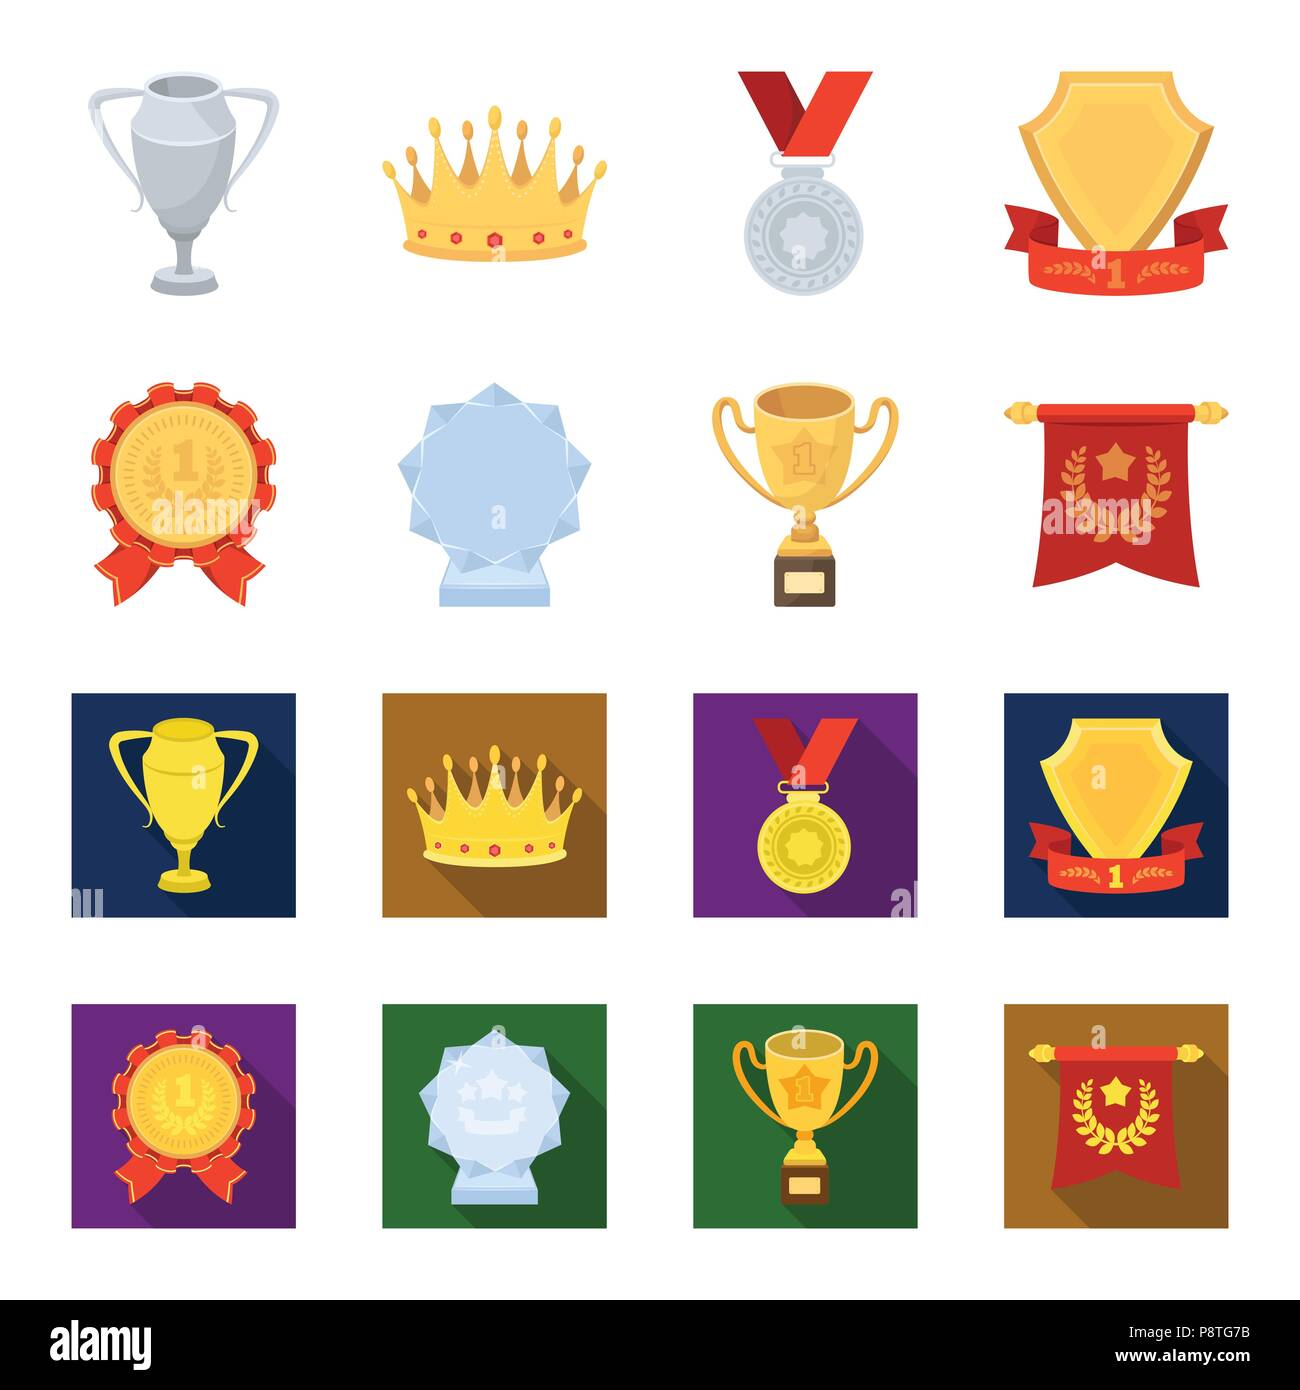 hight resolution of an olympic medal for the first place a crystal ball a gold cup on a stand a red pendant awards and trophies set collection icons in cartoon flat st